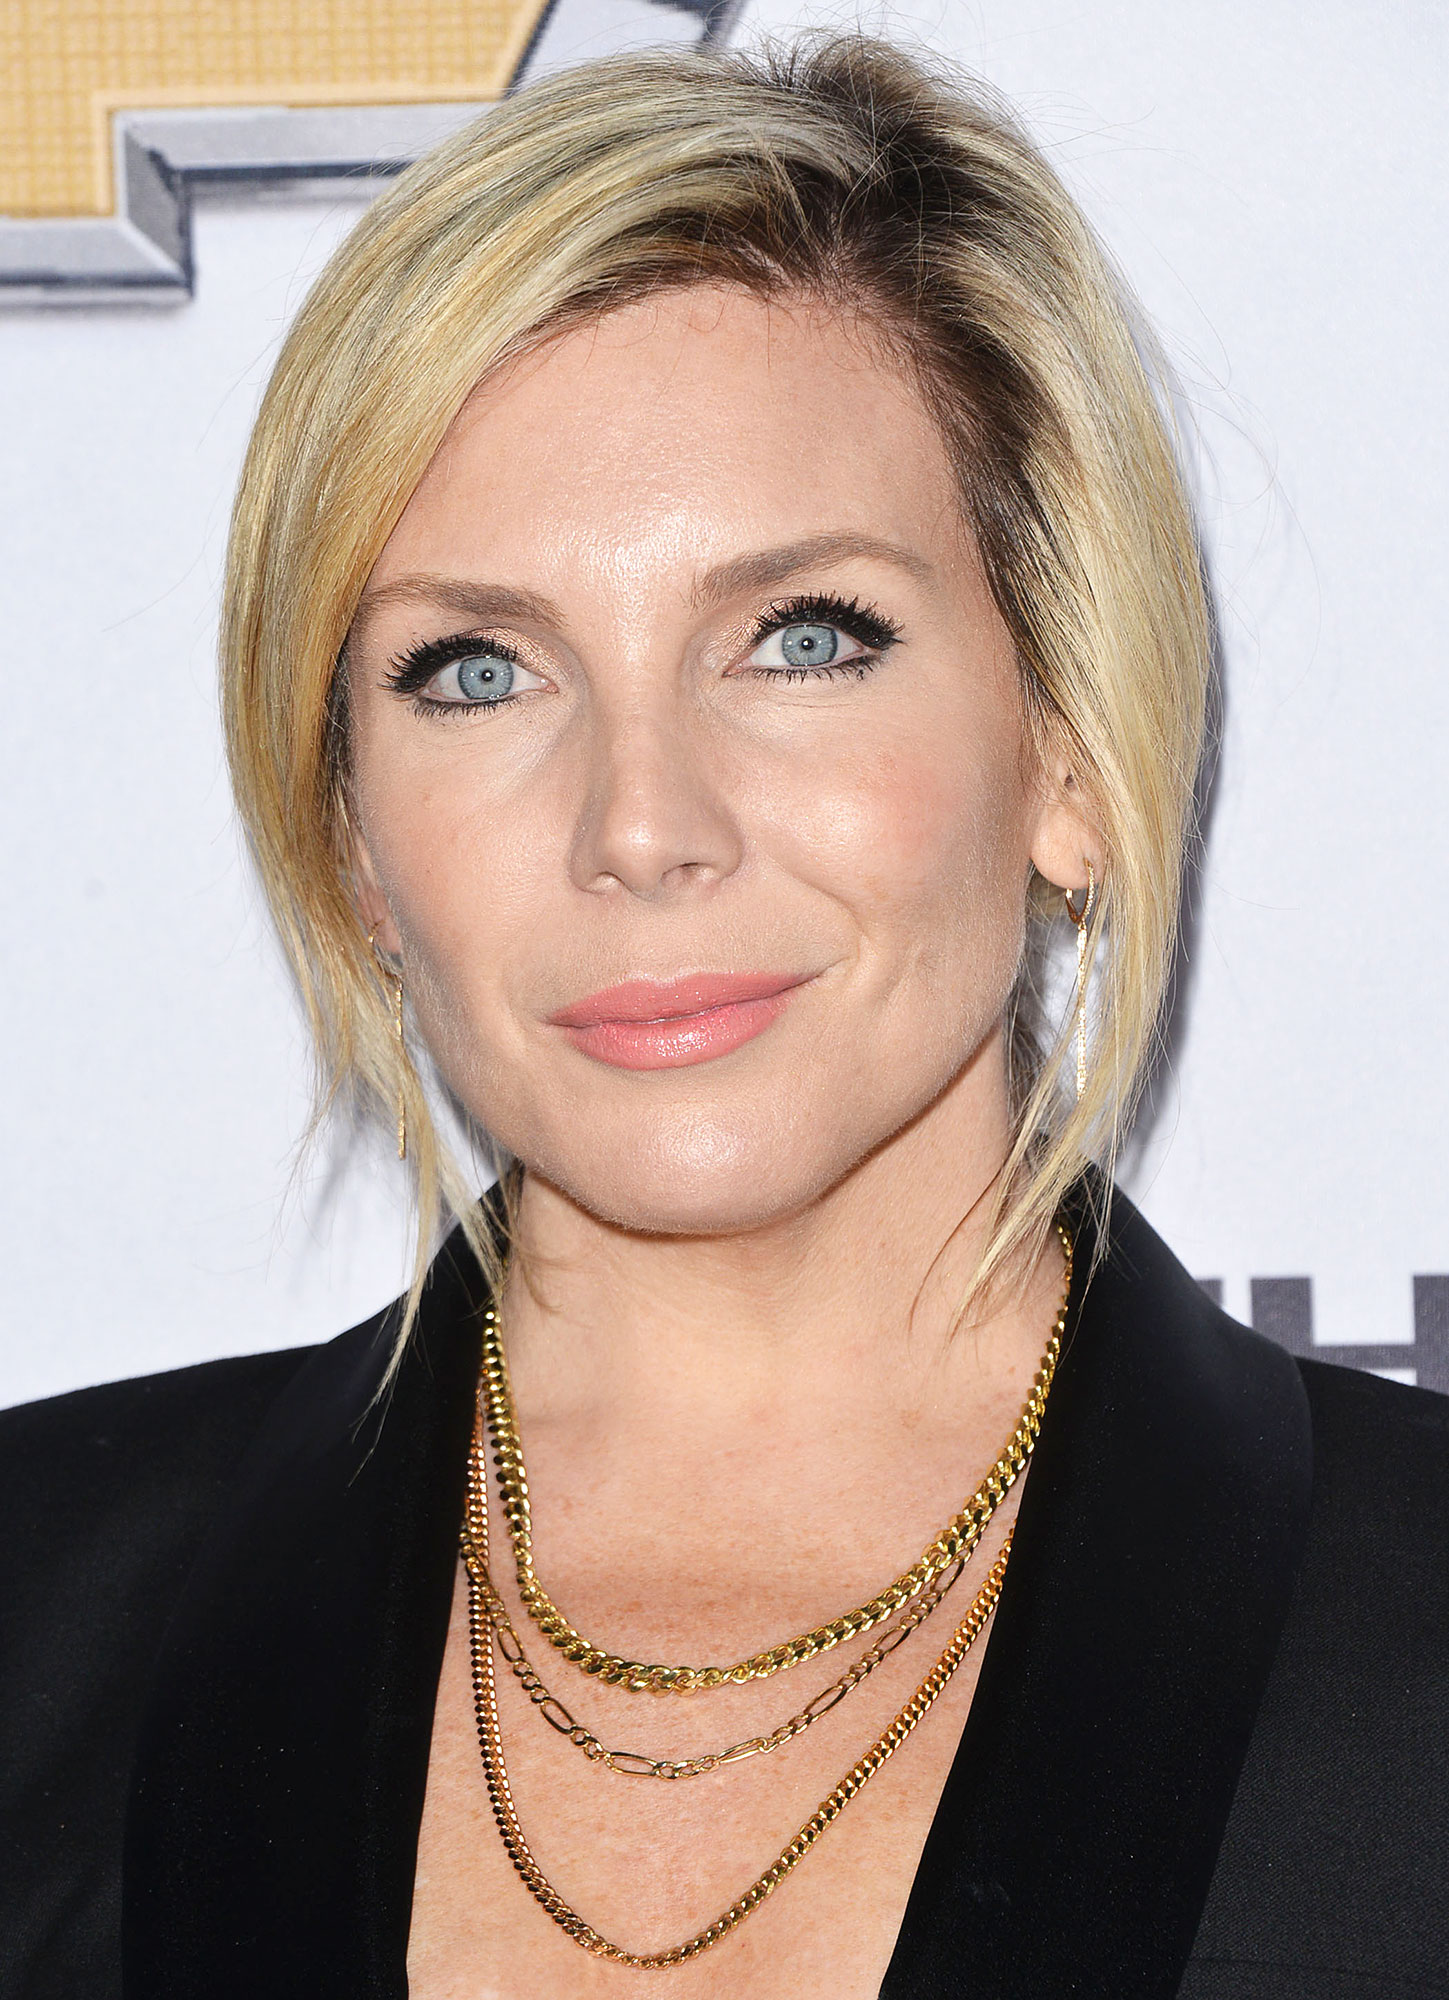 June Diane Raphael Talks to Sons About Gender Fluidity